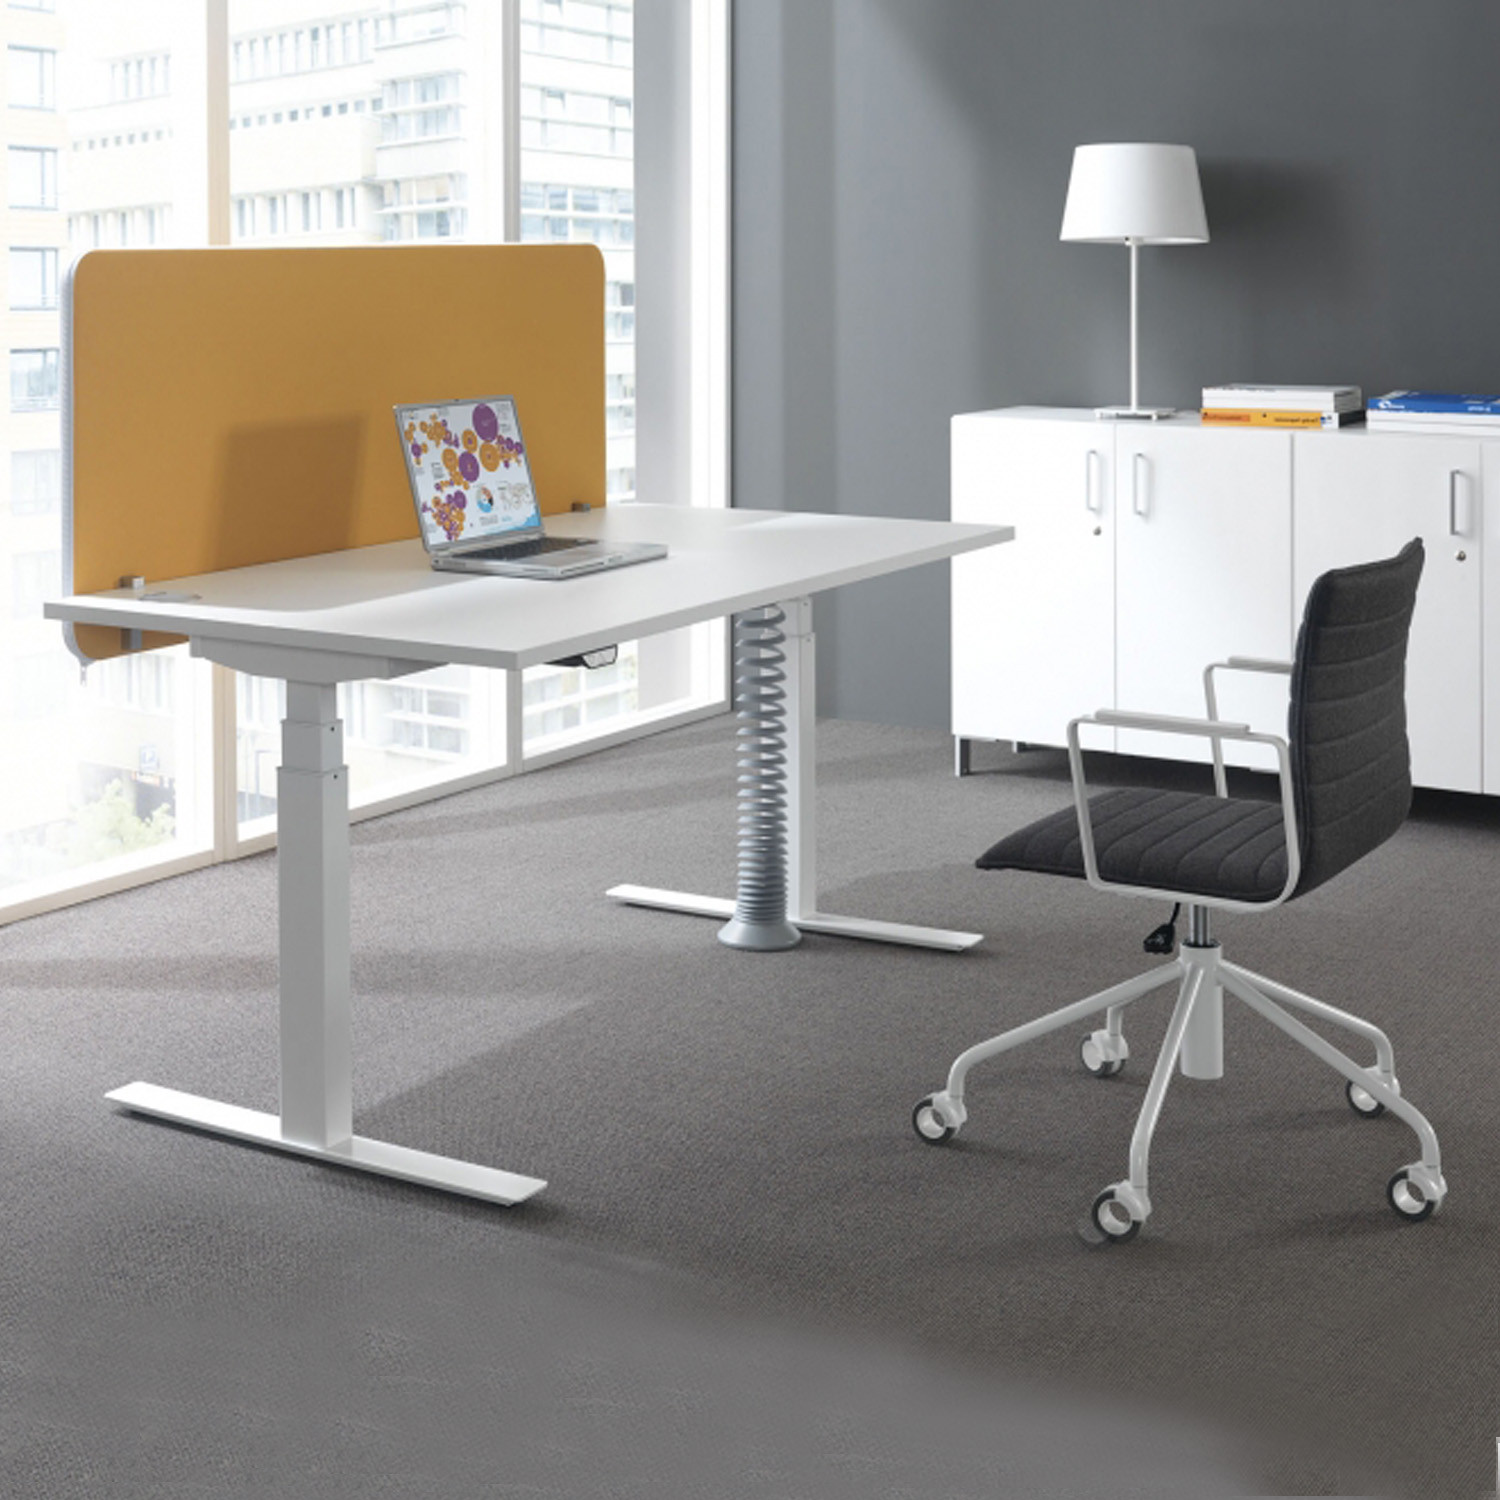 Balance Height Adjustable Desk by Mikomax